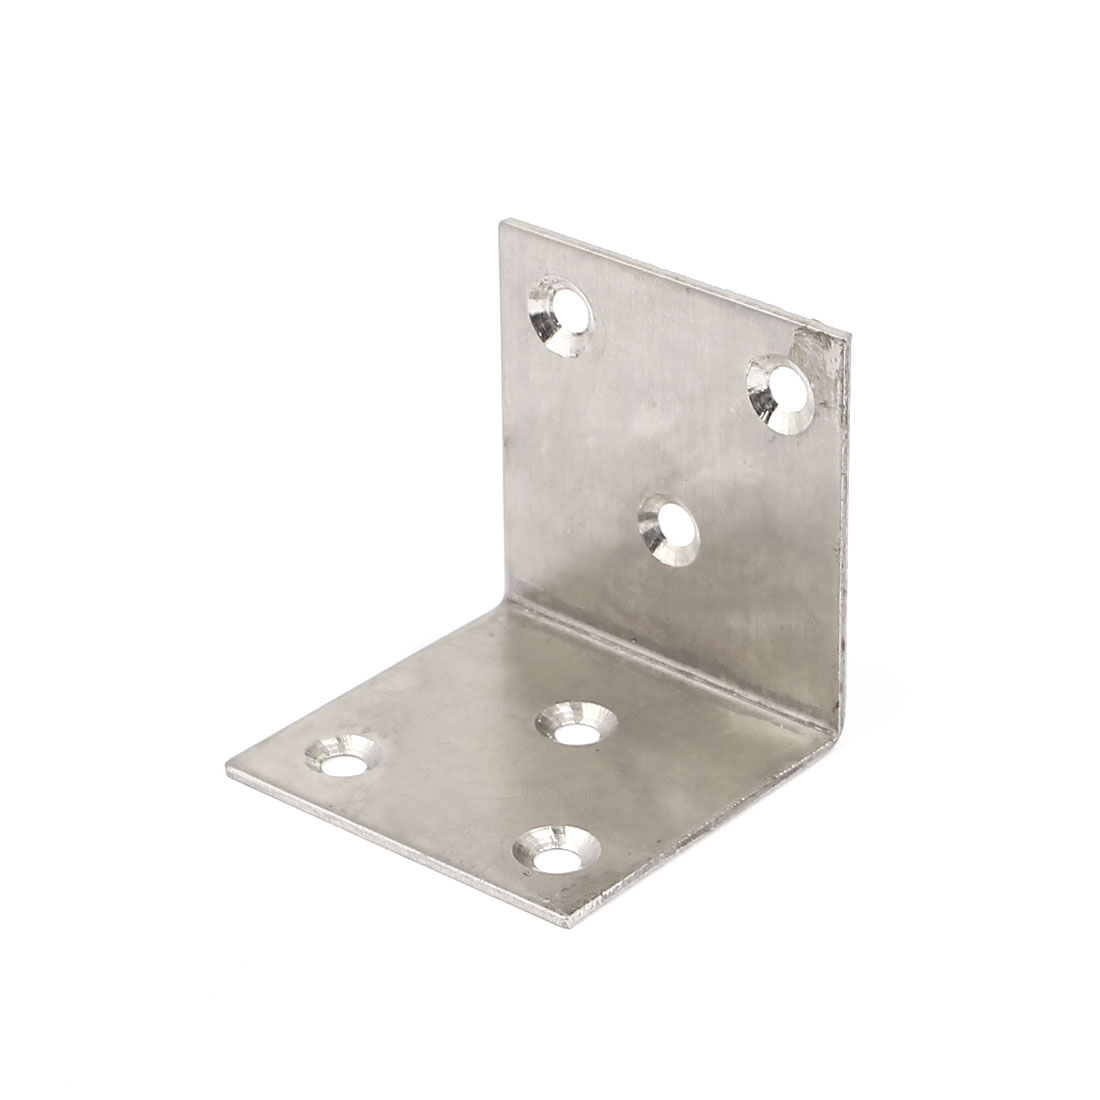 50mmx50mm L Shape Stainless Steel Shelf Wall Corner Brace Right Angle Bracket